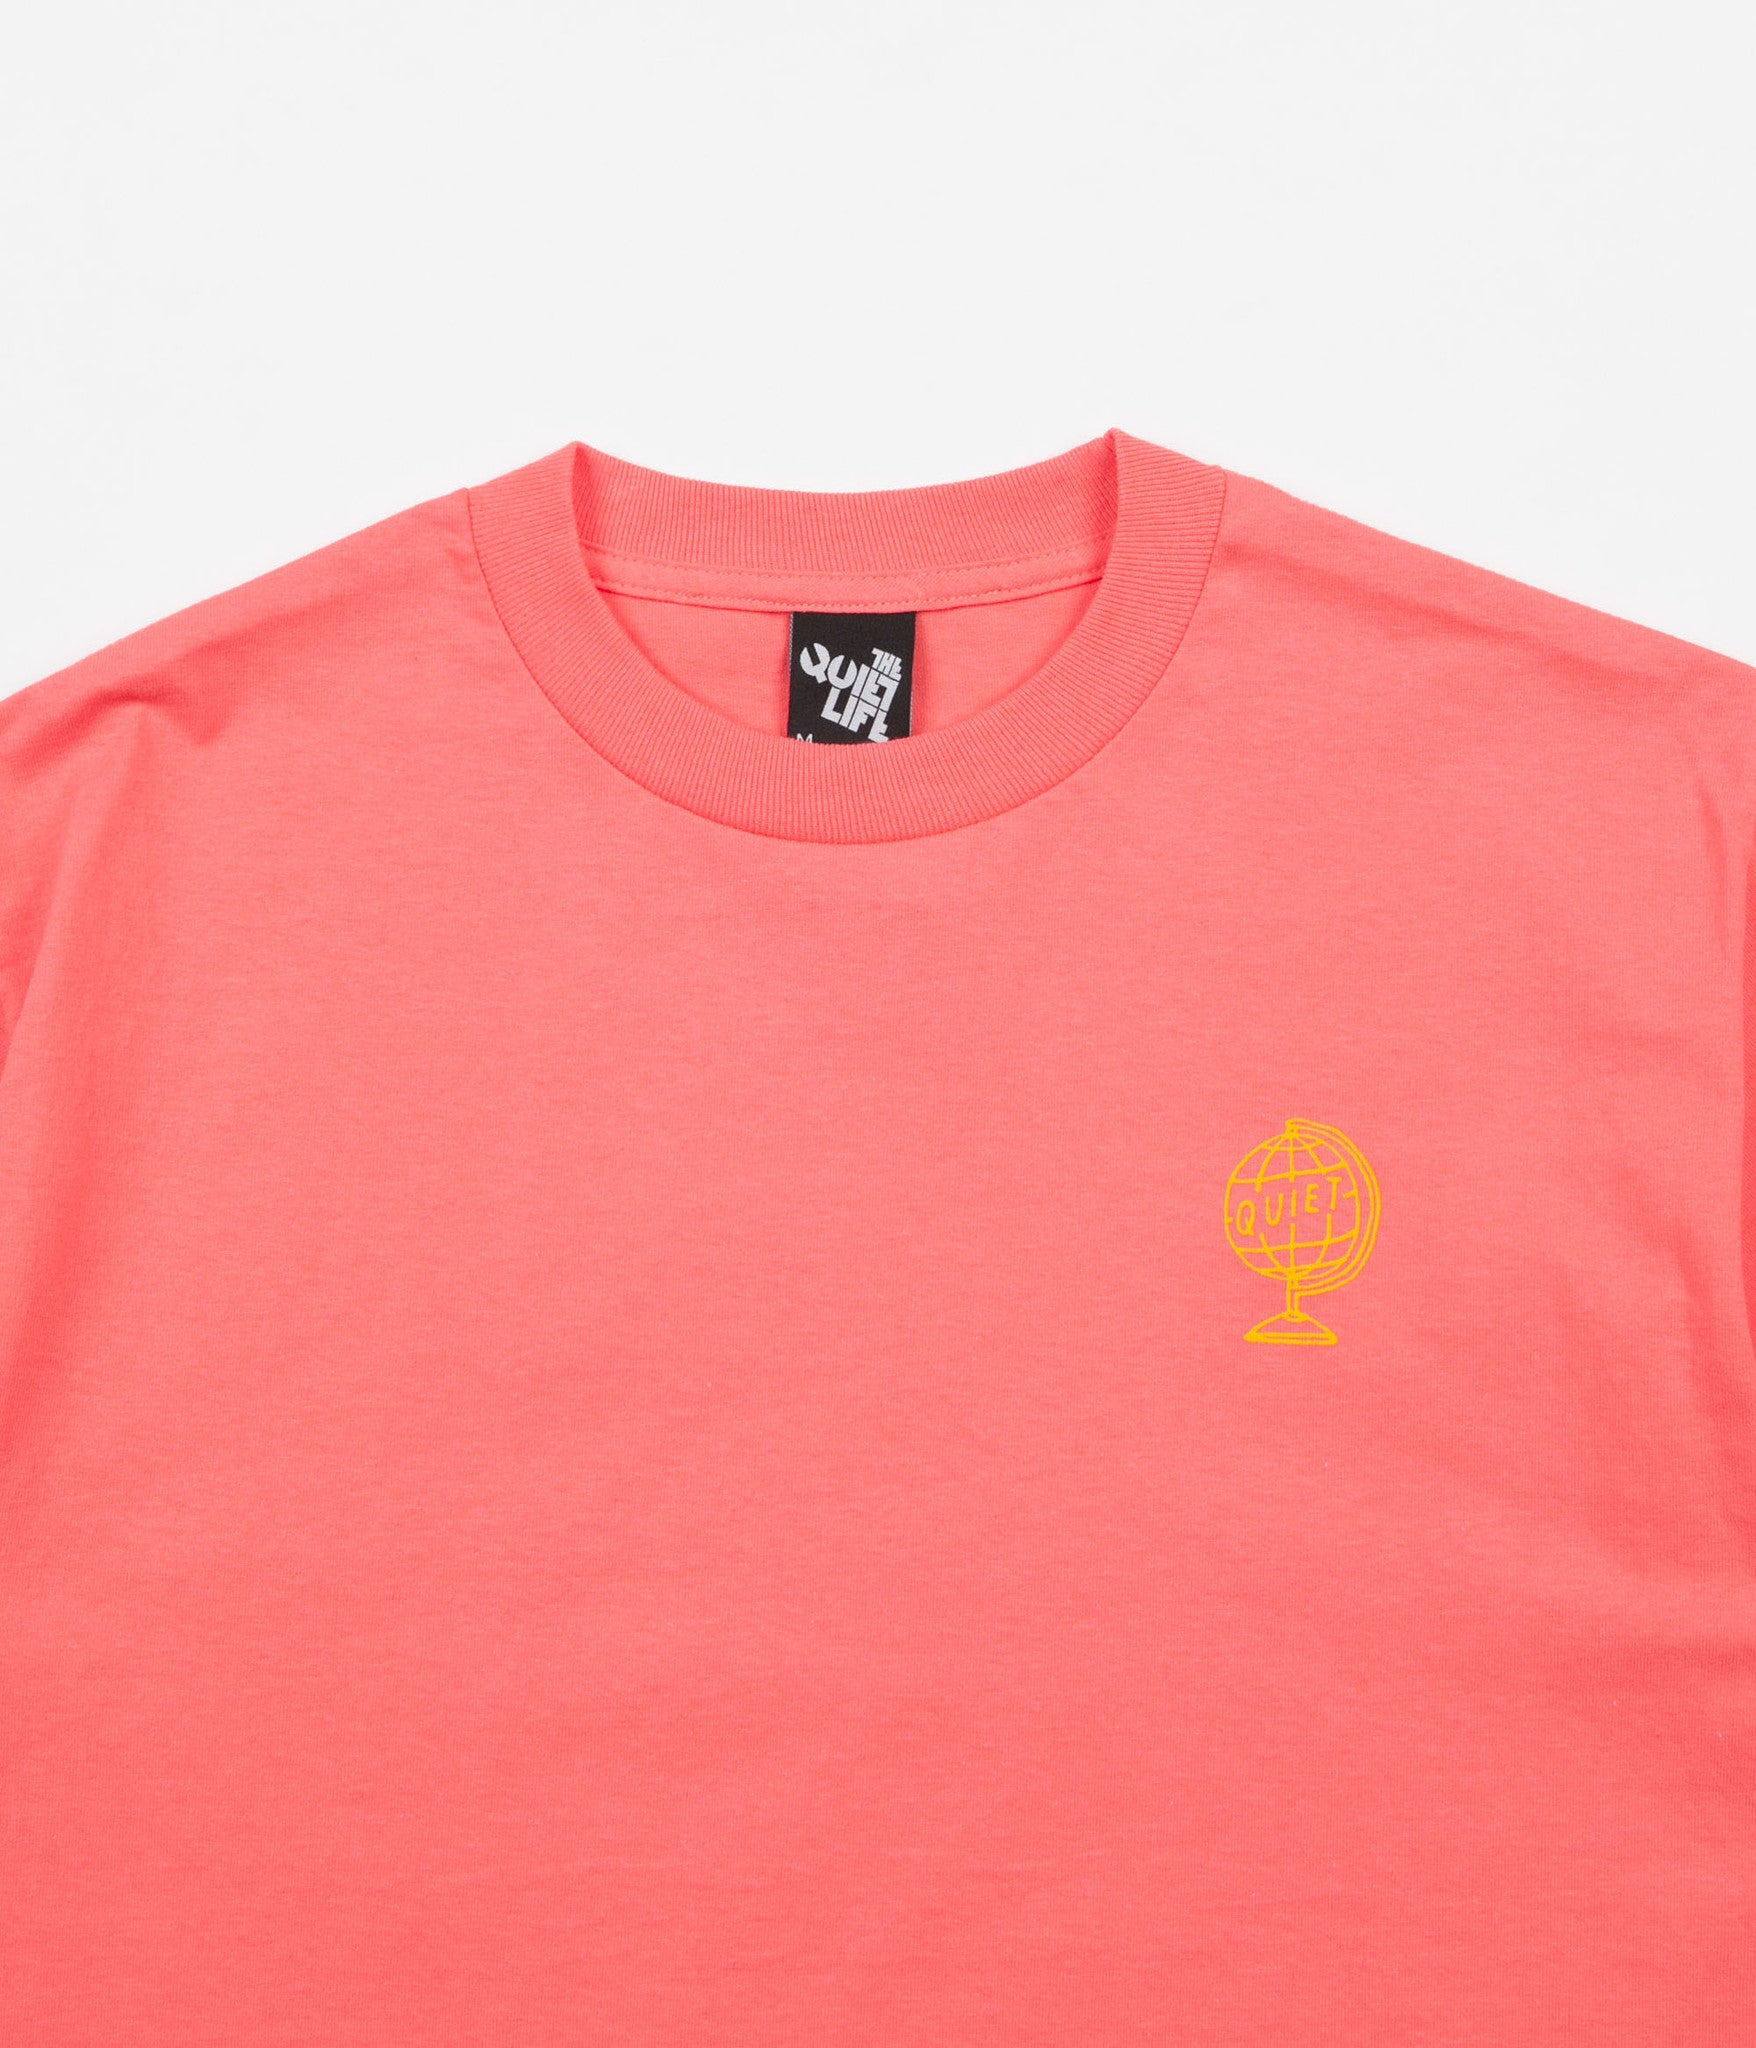 The Quiet Life Wildworld T-Shirt - Coral